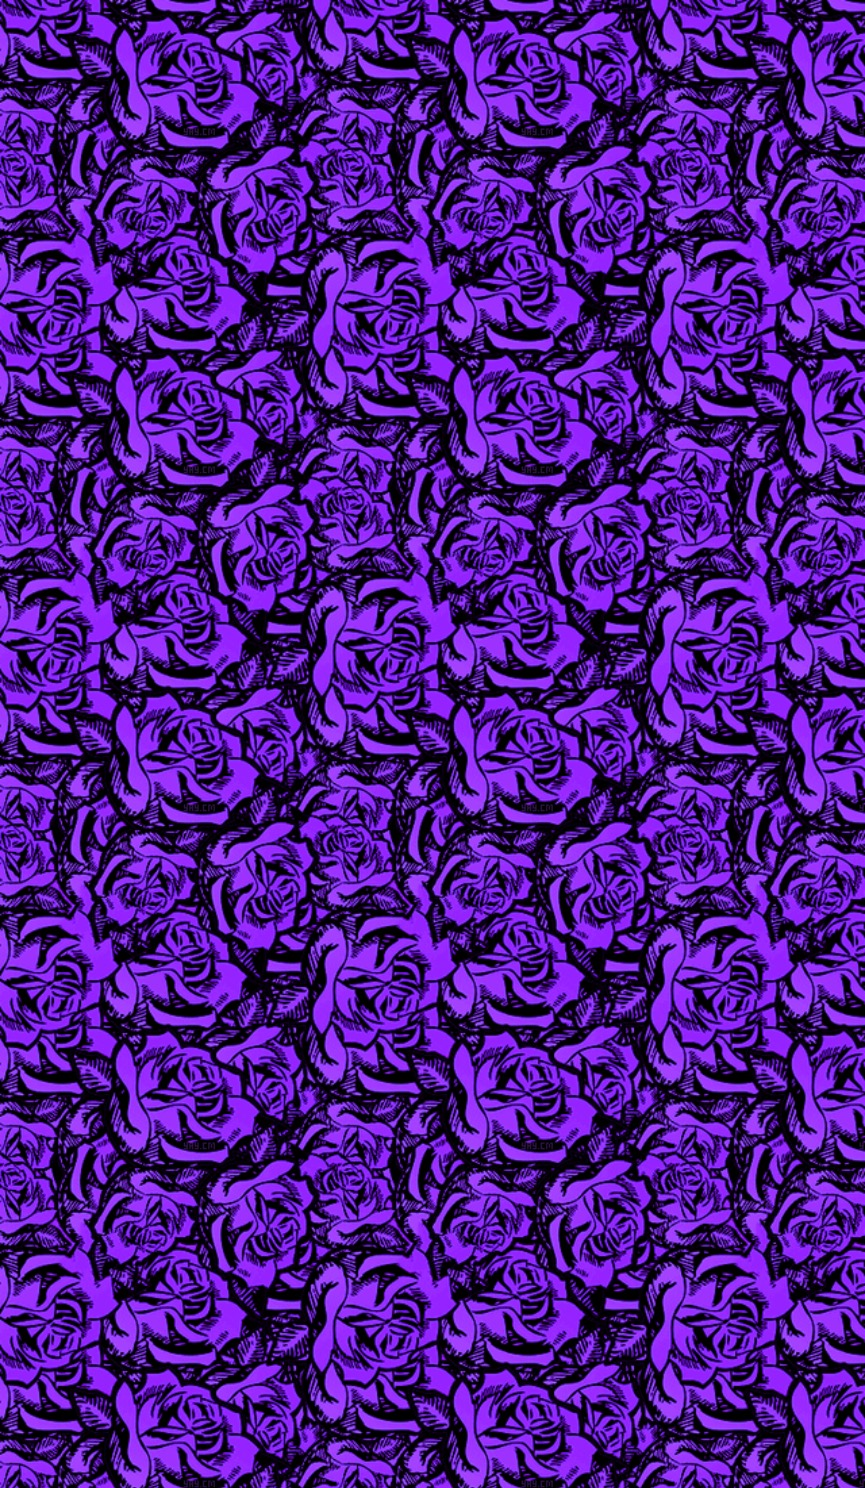 Patterns Backgrounds Wallpaper Images Purple HD And Background Photos